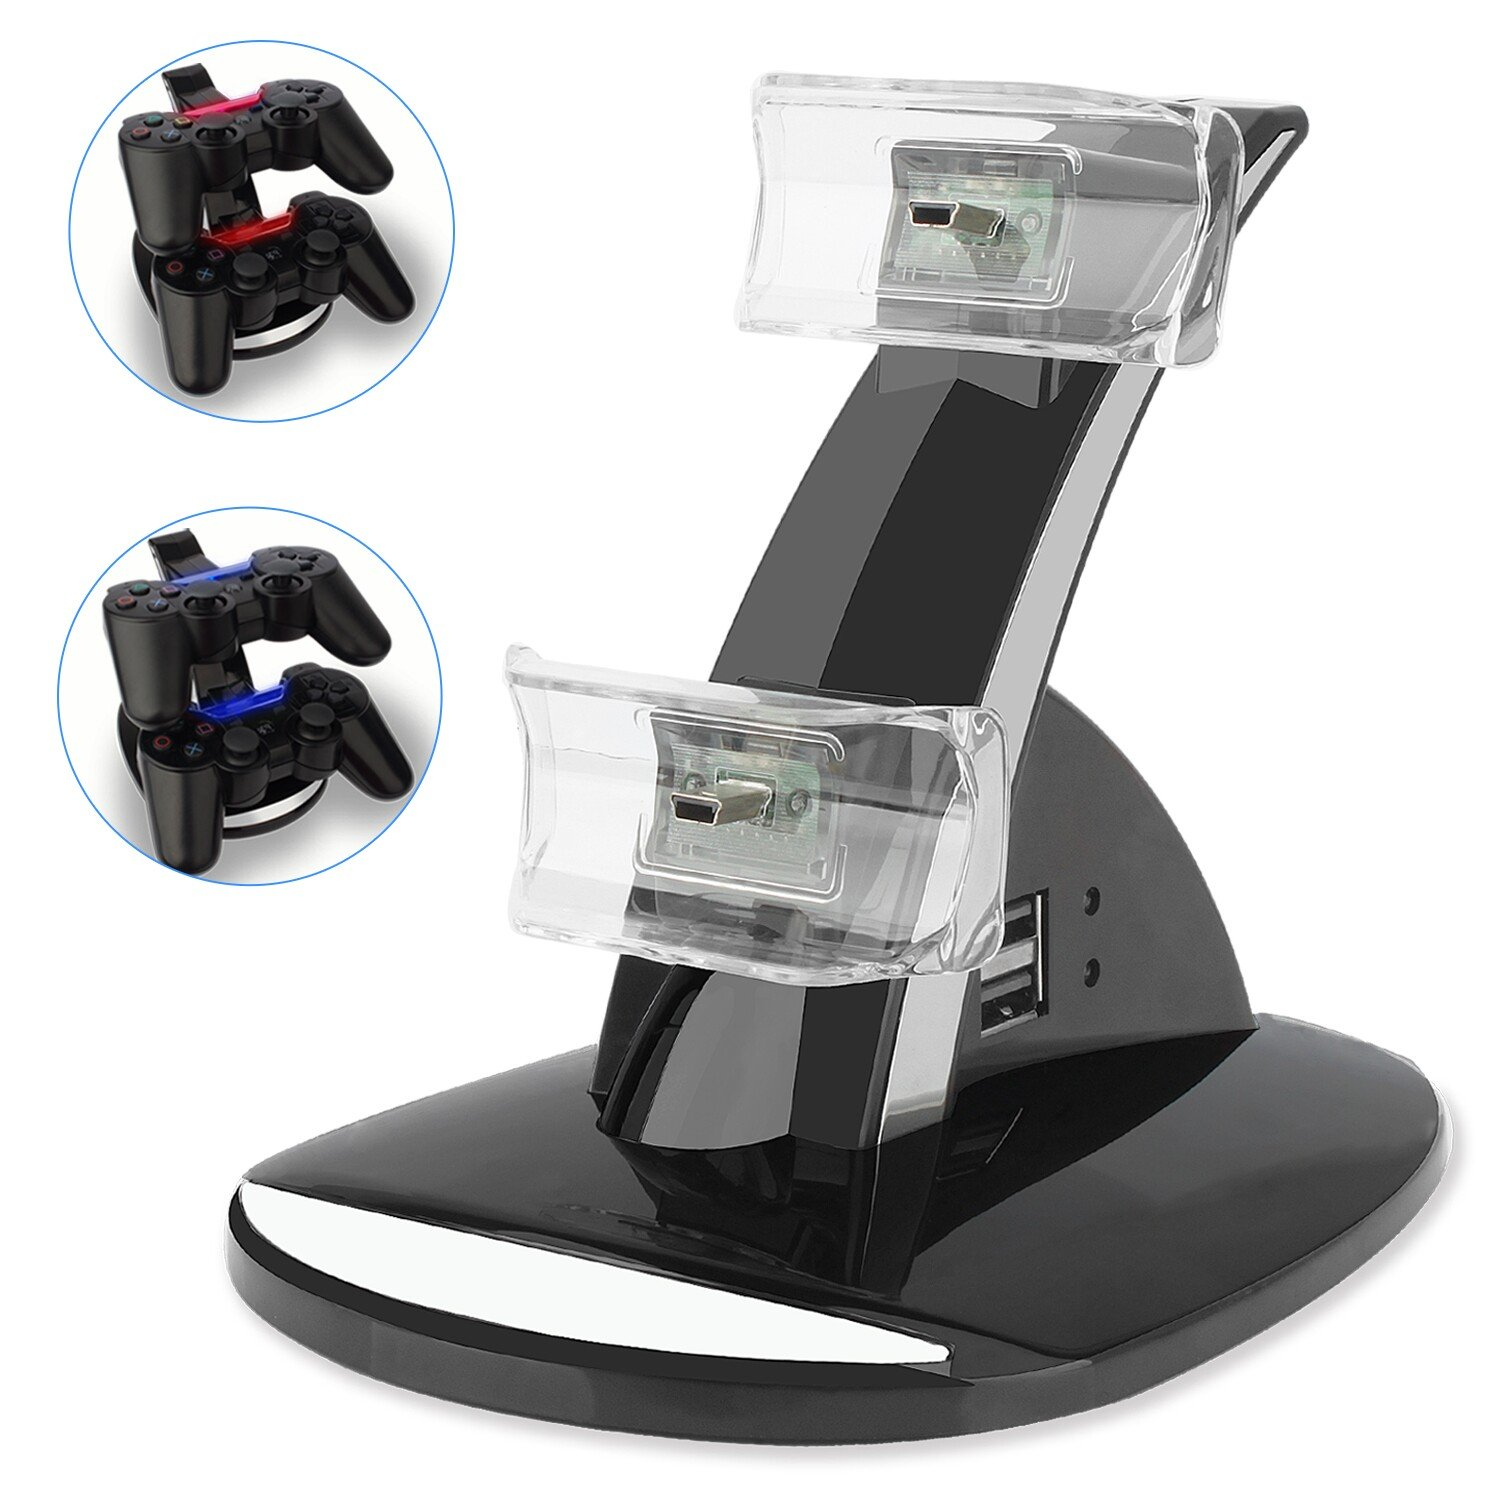 PS3 Playstation 3 Controller Charger, YCCTEAM® Dual Console Charger Charging Docking Station Stand for Playstation 3 PS3 with LED Indicators, Black